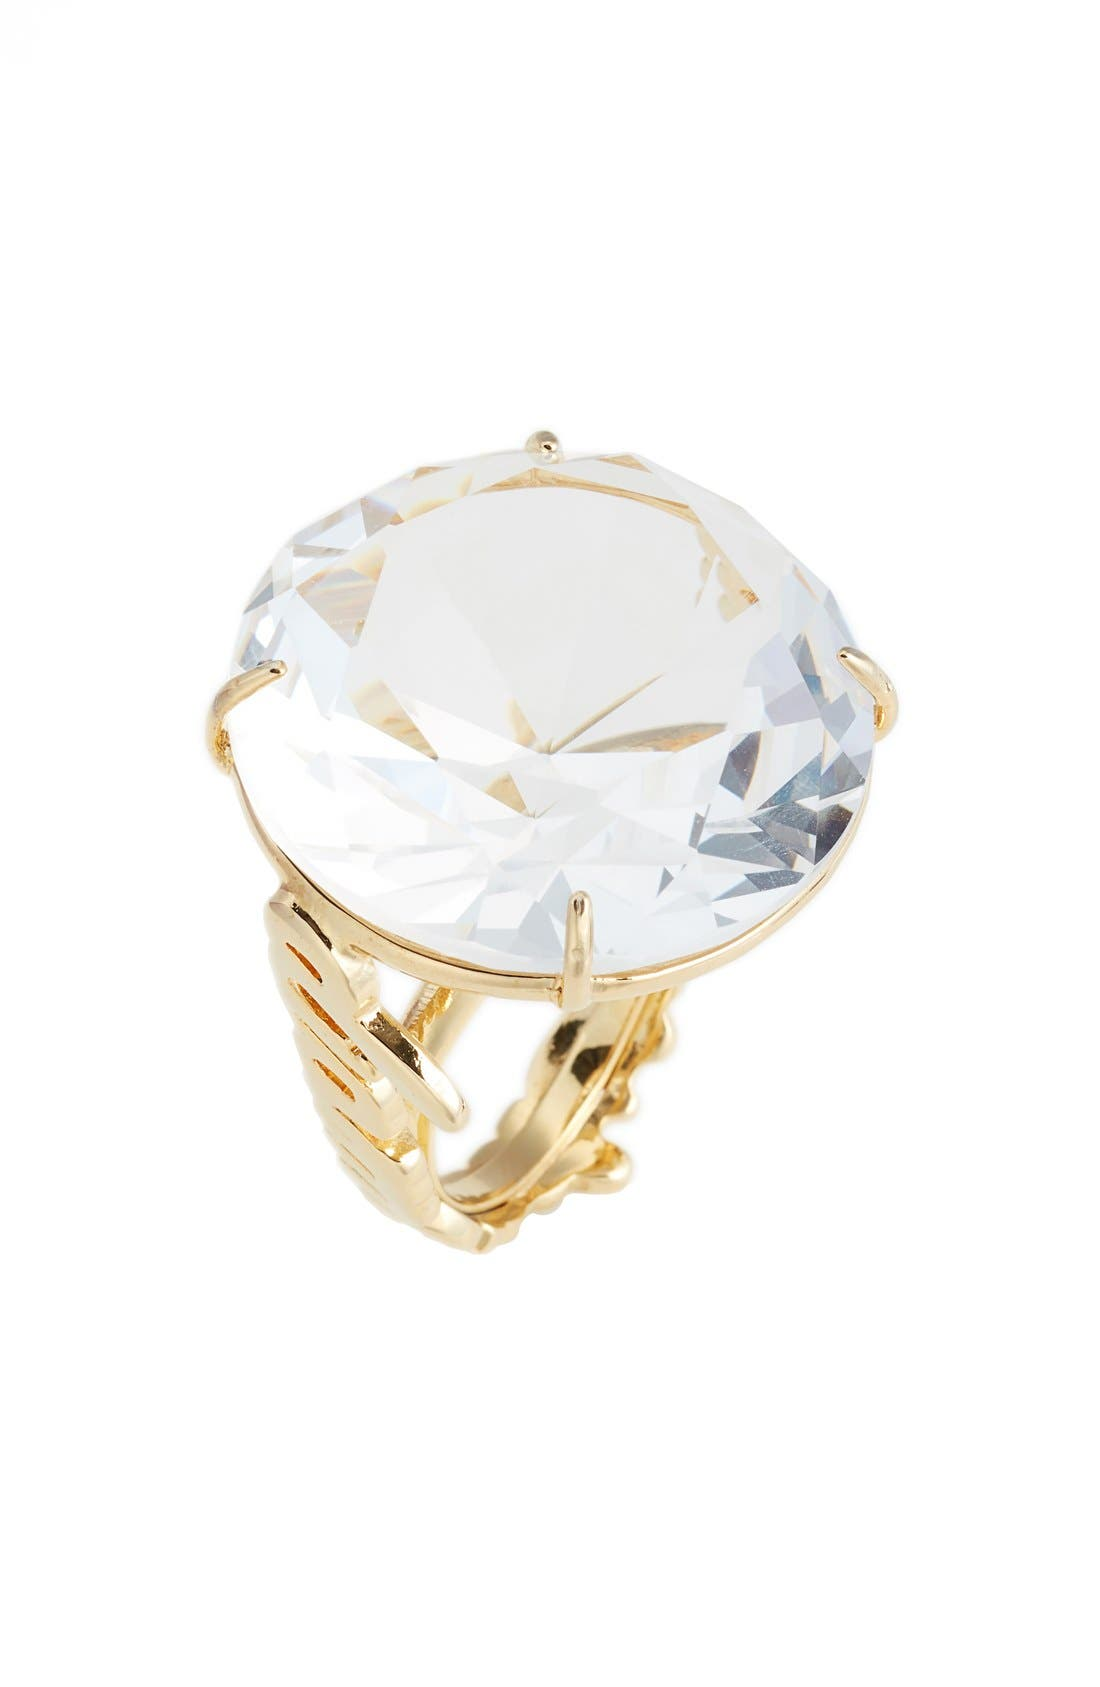 Main Image - kate spade new york 'what a gem' crystal cocktail ring